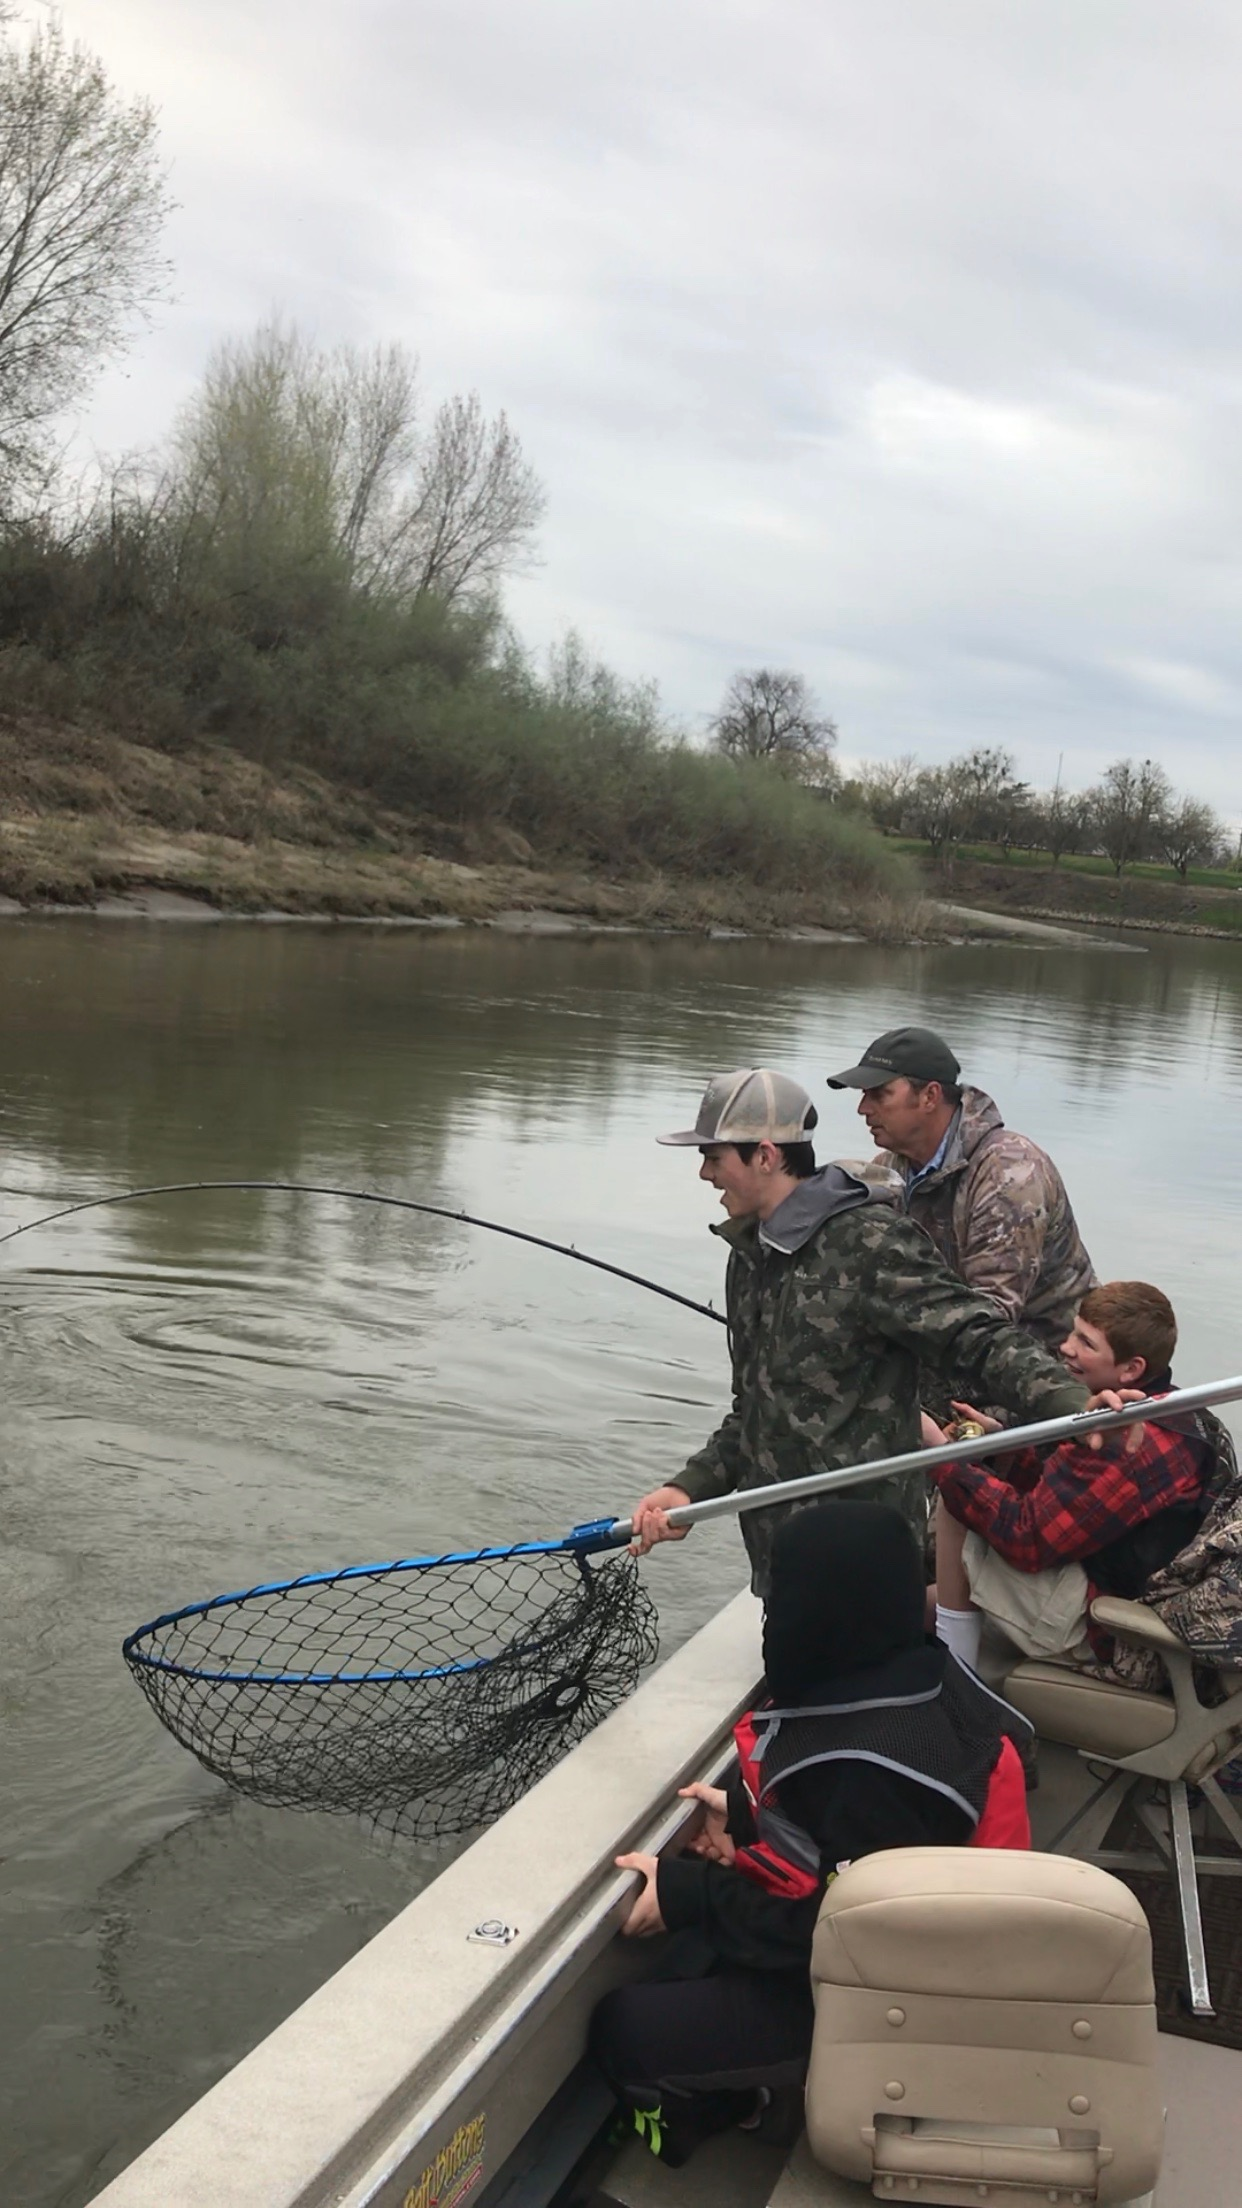 "Dave Jacobs keeping his eye on the prize, as his 13 year old guest fights a Sacramento River white sturgeon for the first time. Ryan Tripp successfully netted this 60"" sturgeon. It was released unharmed."